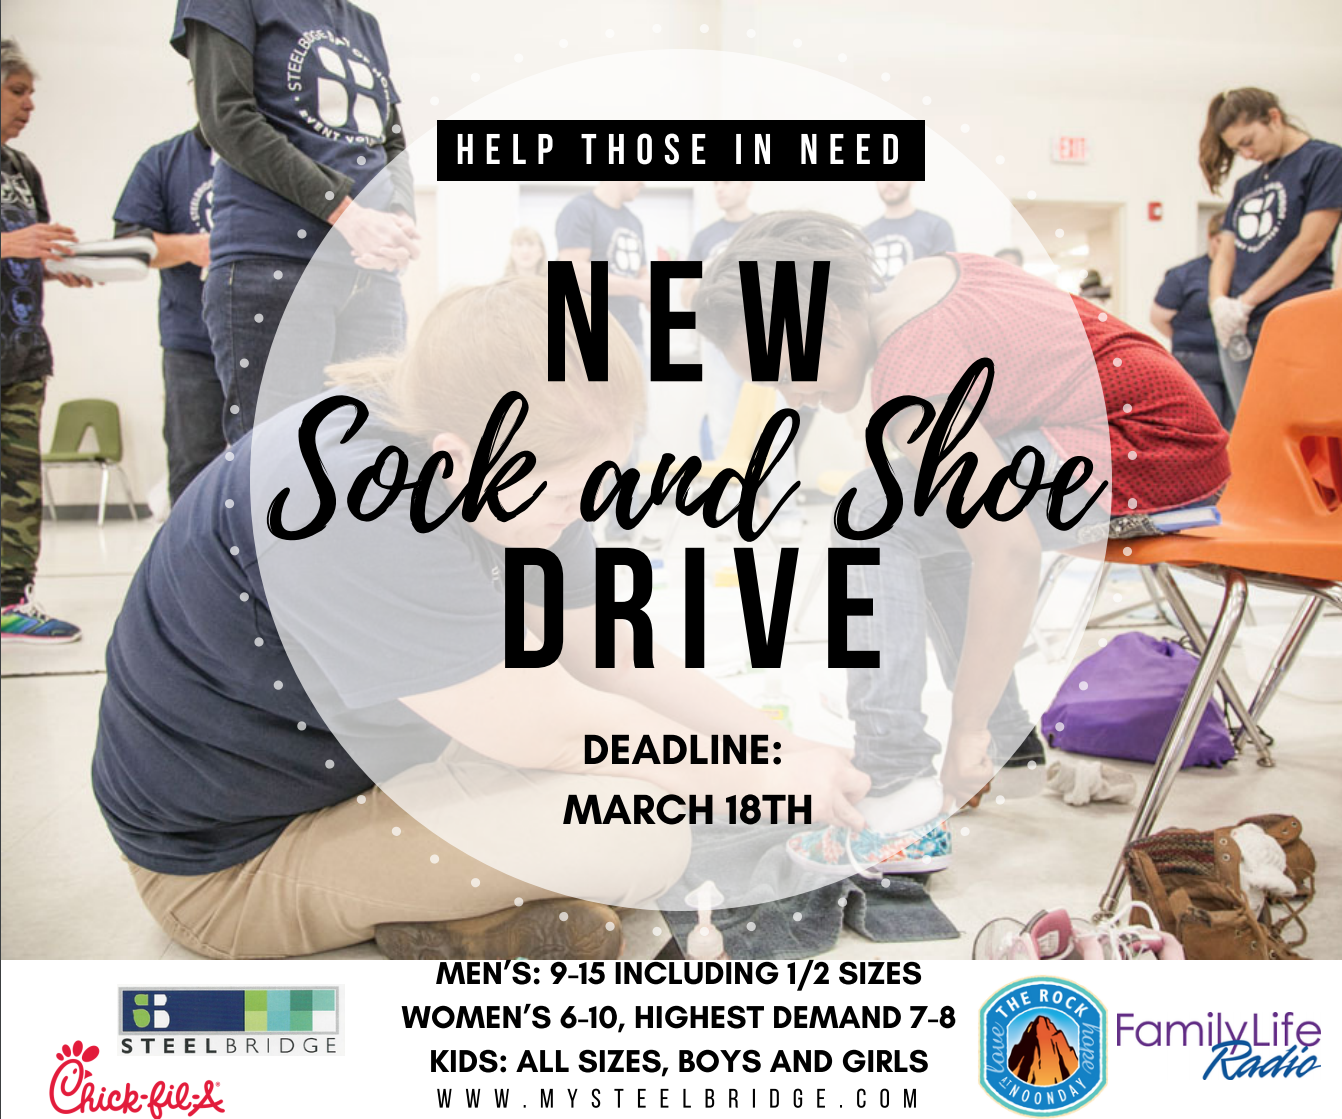 Drop off new shoes and socks at any Chick Fil A location beginning March 5th.